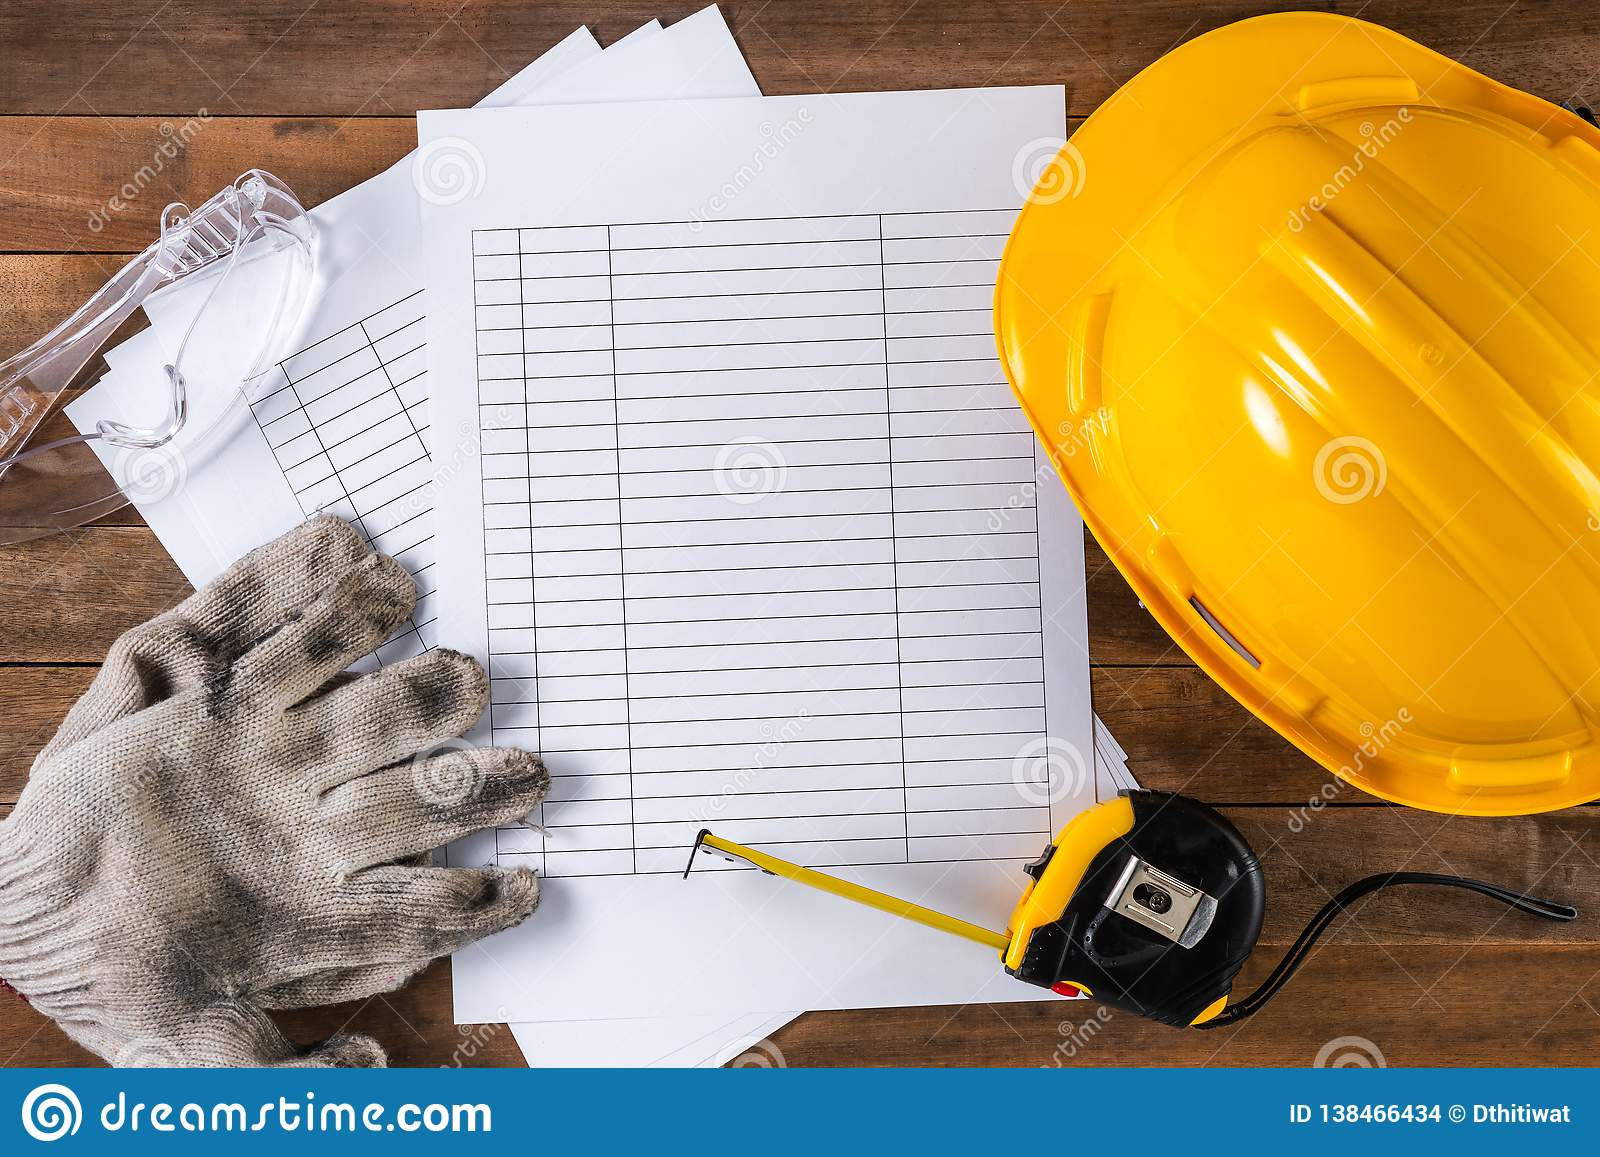 Engineer Or Foreman Safety Equipment And Blank Schedule Stock Photo